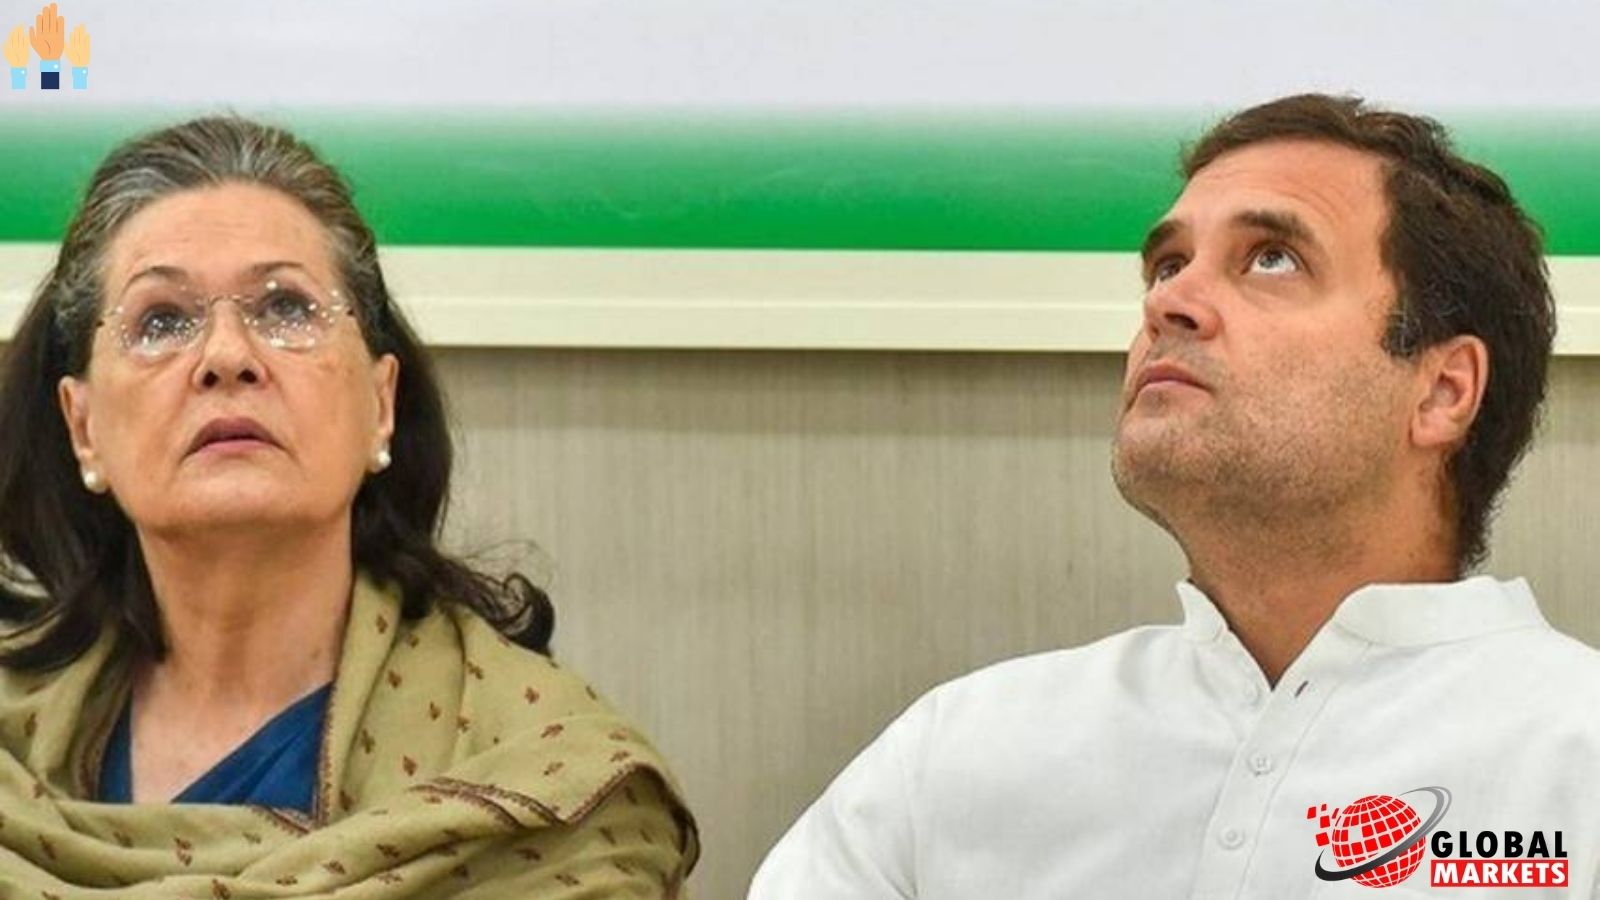 New Congress leader in June, decision after an argument at the Meeting